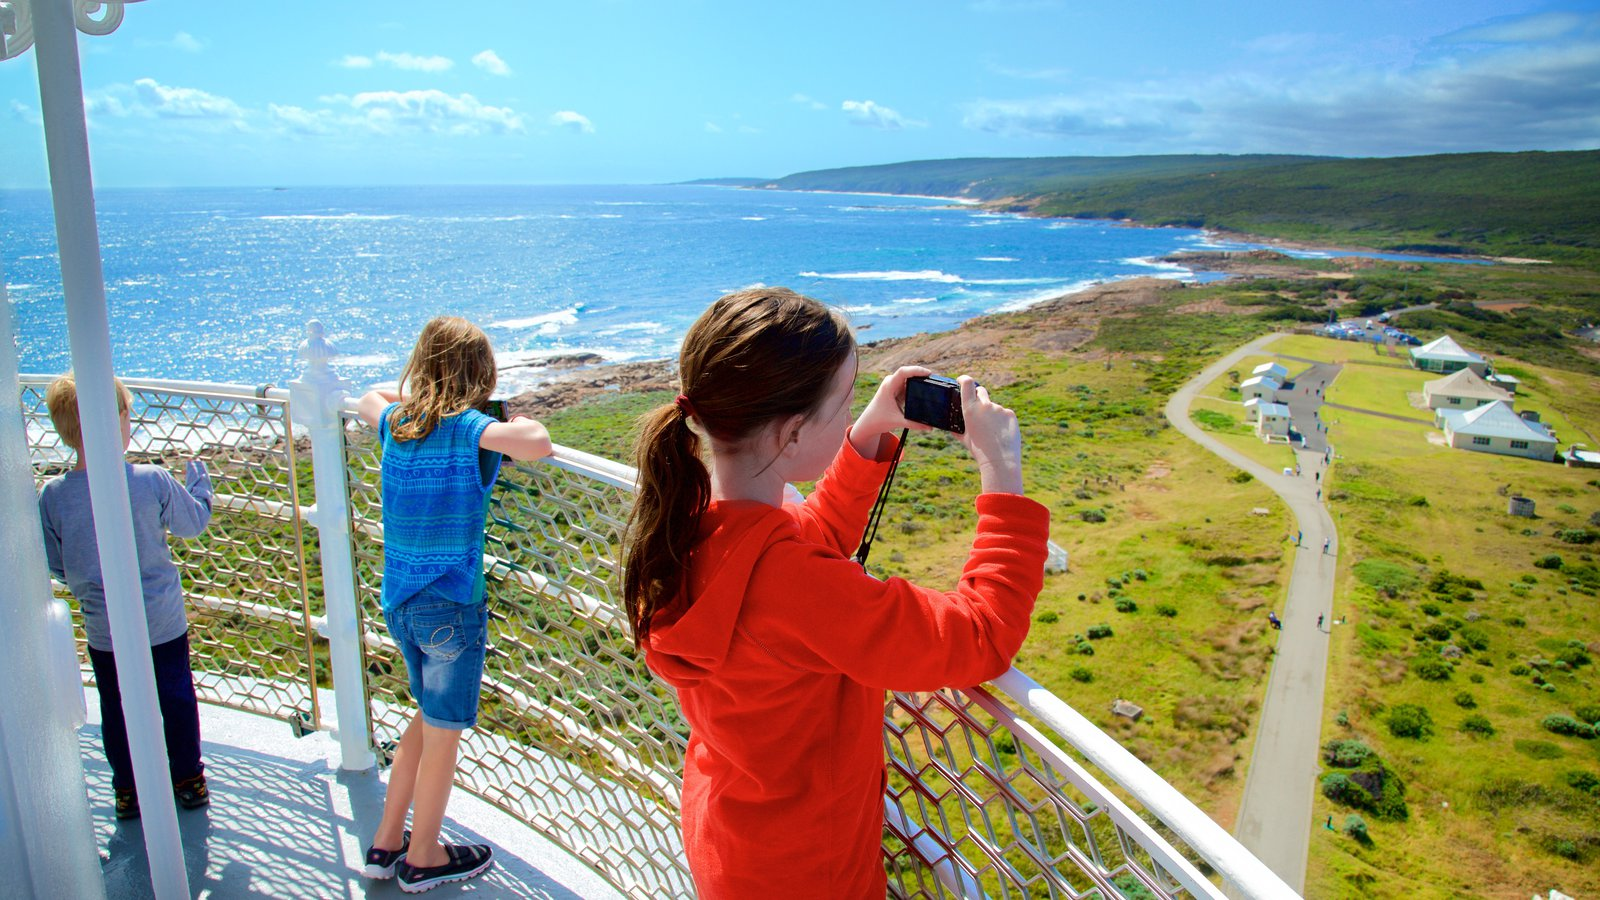 Cape Leeuwin Lighthouse which includes a small town or village and rocky coastline as well as children